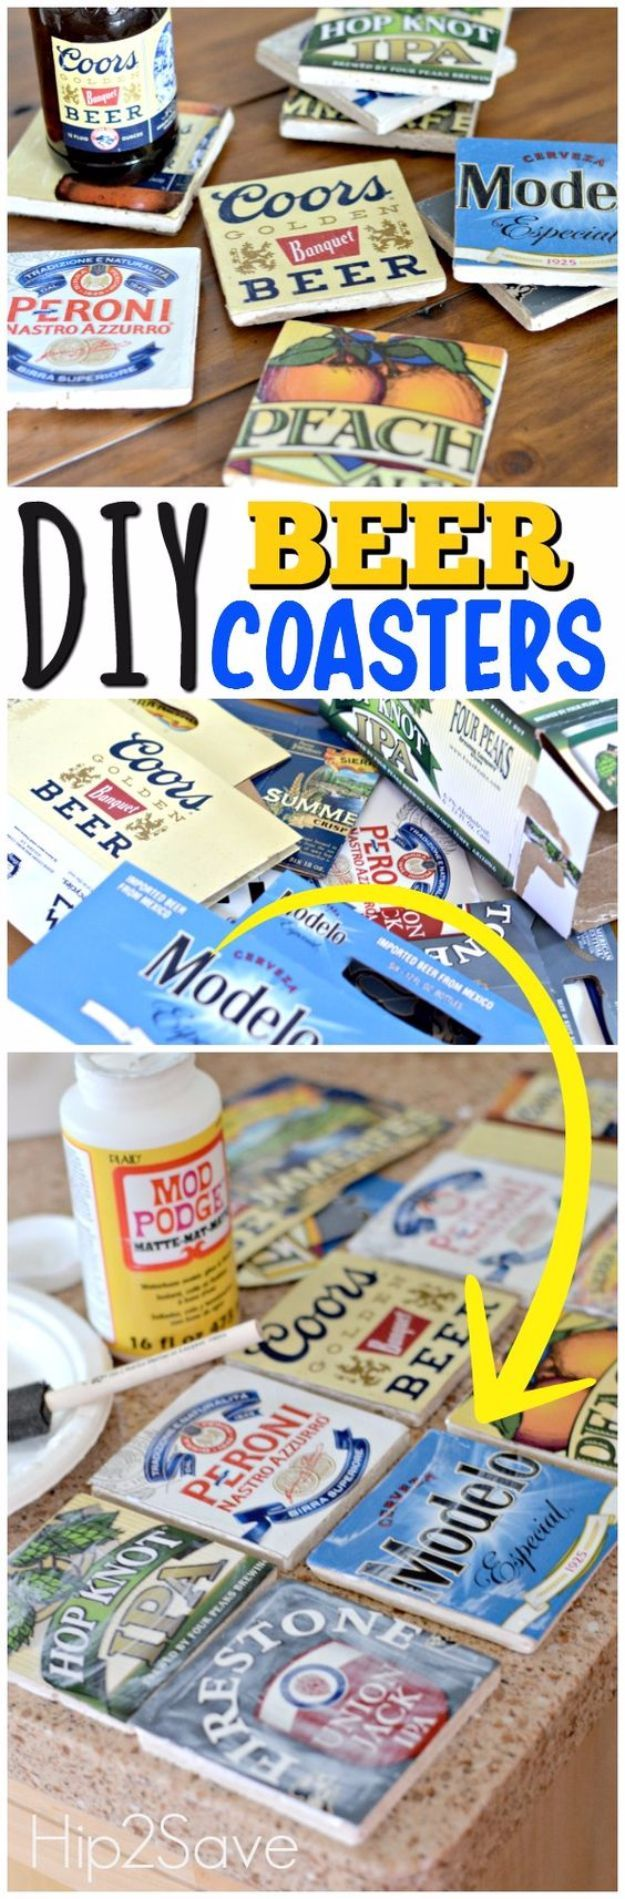 DIY Coasters - DIY Beer Coasters - Best Quick DIY Gifts and Home Decor - Easy Step by Step Tutorials for DIY Coaster Projects - Mod Podge, Tile, Painted, Photo and Sewing Projects - Cool Christmas Presents for Him and Her - DIY Projects and Crafts by DIY Joy http://diyjoy.com/diy-coasters #artsandcraftshouse,